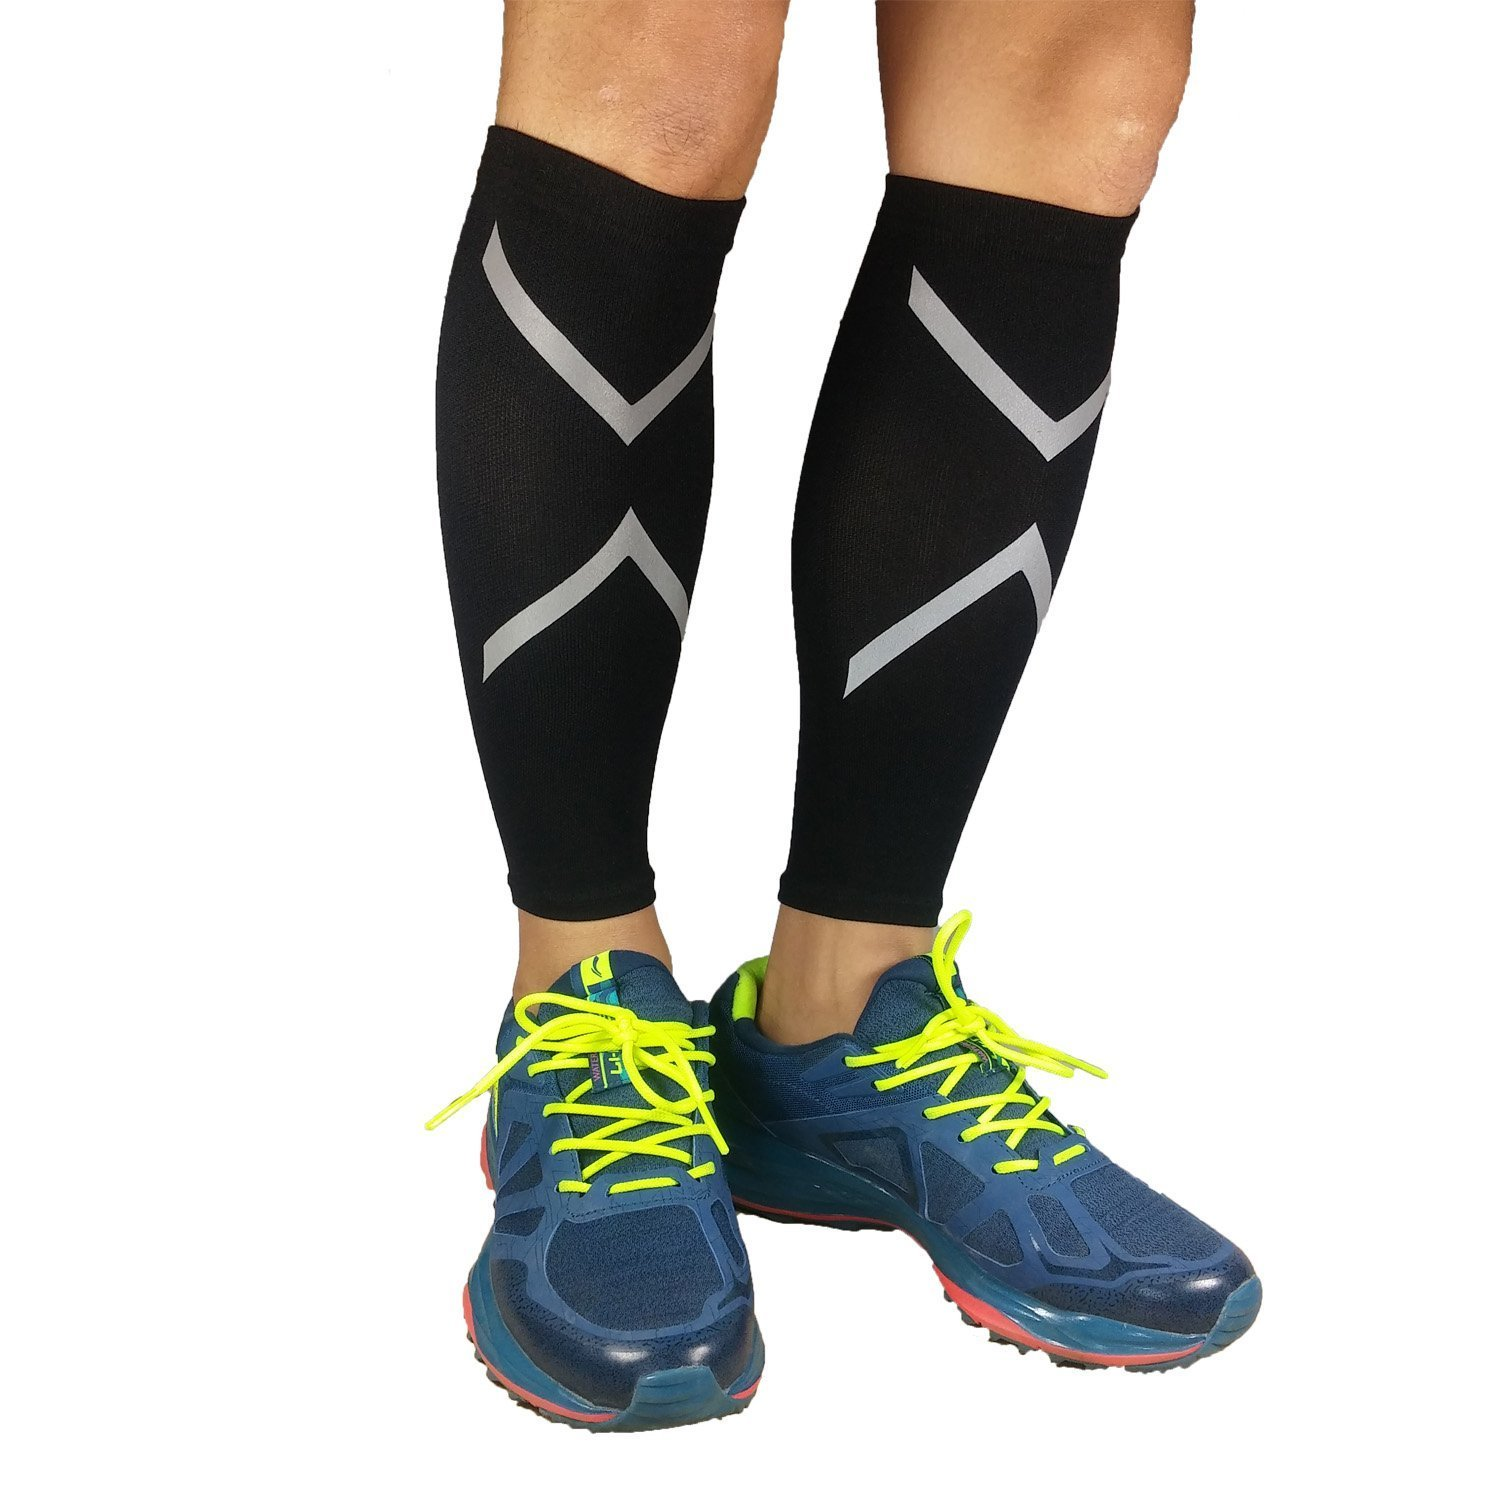 Calf Compression Sleeve, JAMIK Footless Socks Shin Splint / Leg Compression Sleeves Calves & Leg Cramps for Runners (1 Pair) by Generic